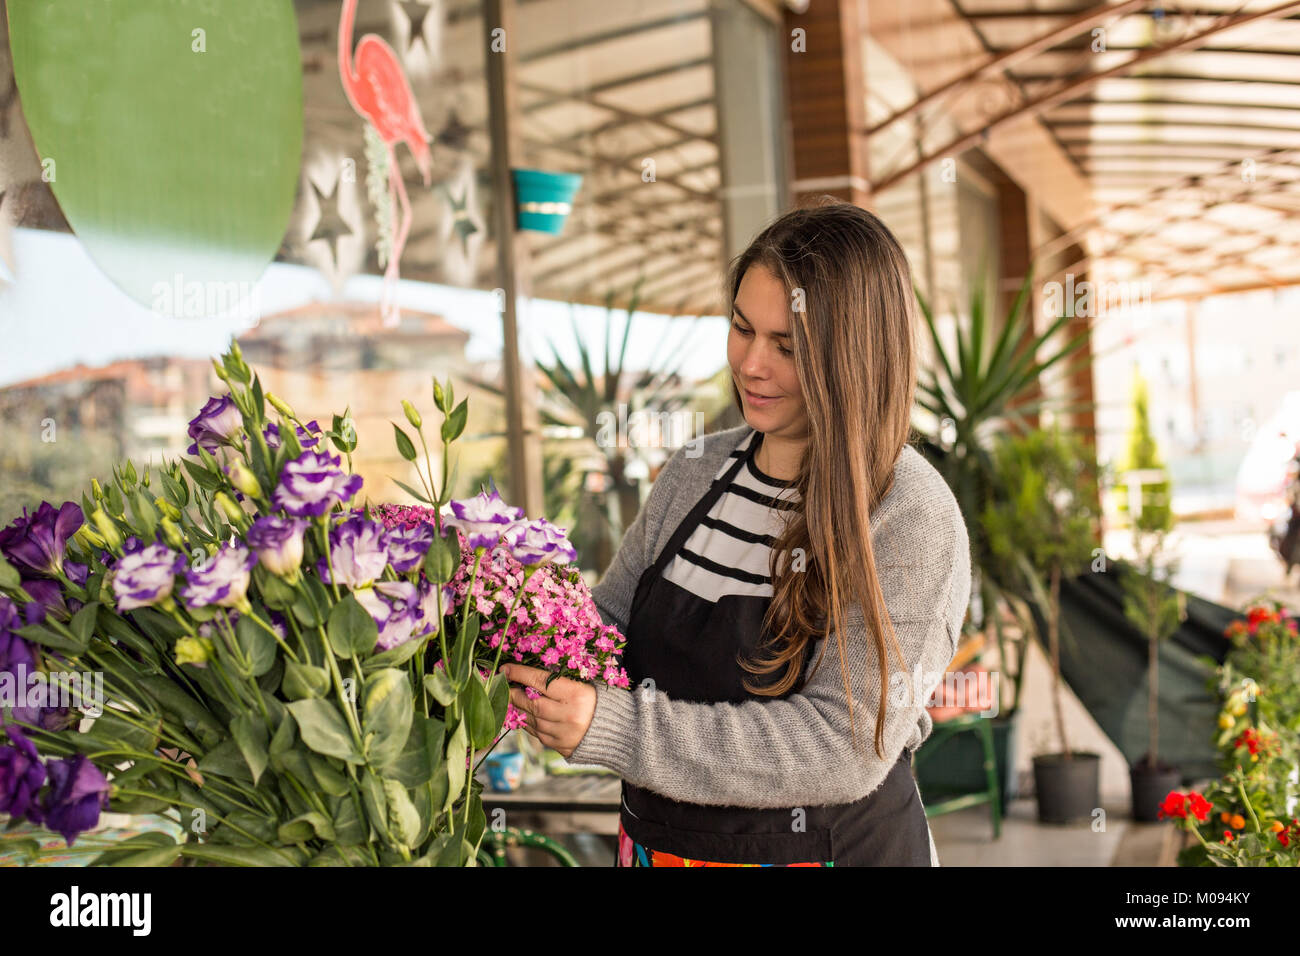 Small business concept. Smilng female florist picking flowers in a flower shop. Horizontal composition - Stock Image